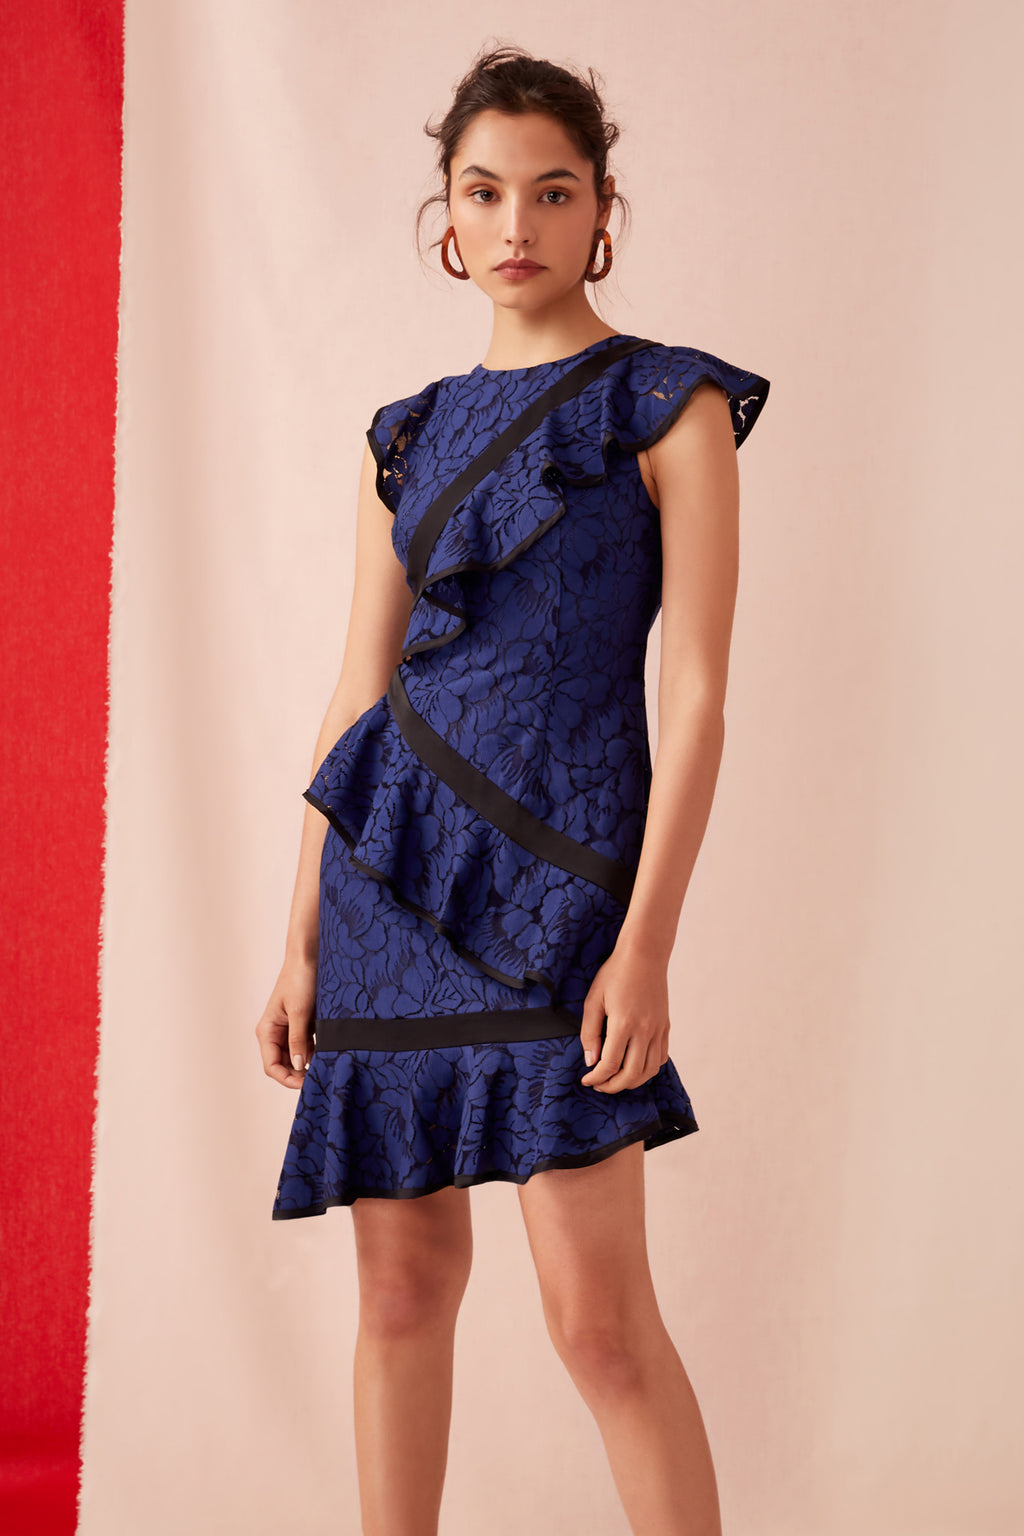 Keepsake The Label Encore lace dress cobalt. Is a soft fit and flare style with soft light weight lace. Asymmetrical frill detail with contrast black binding. Blush and Lace Oakville boutique.